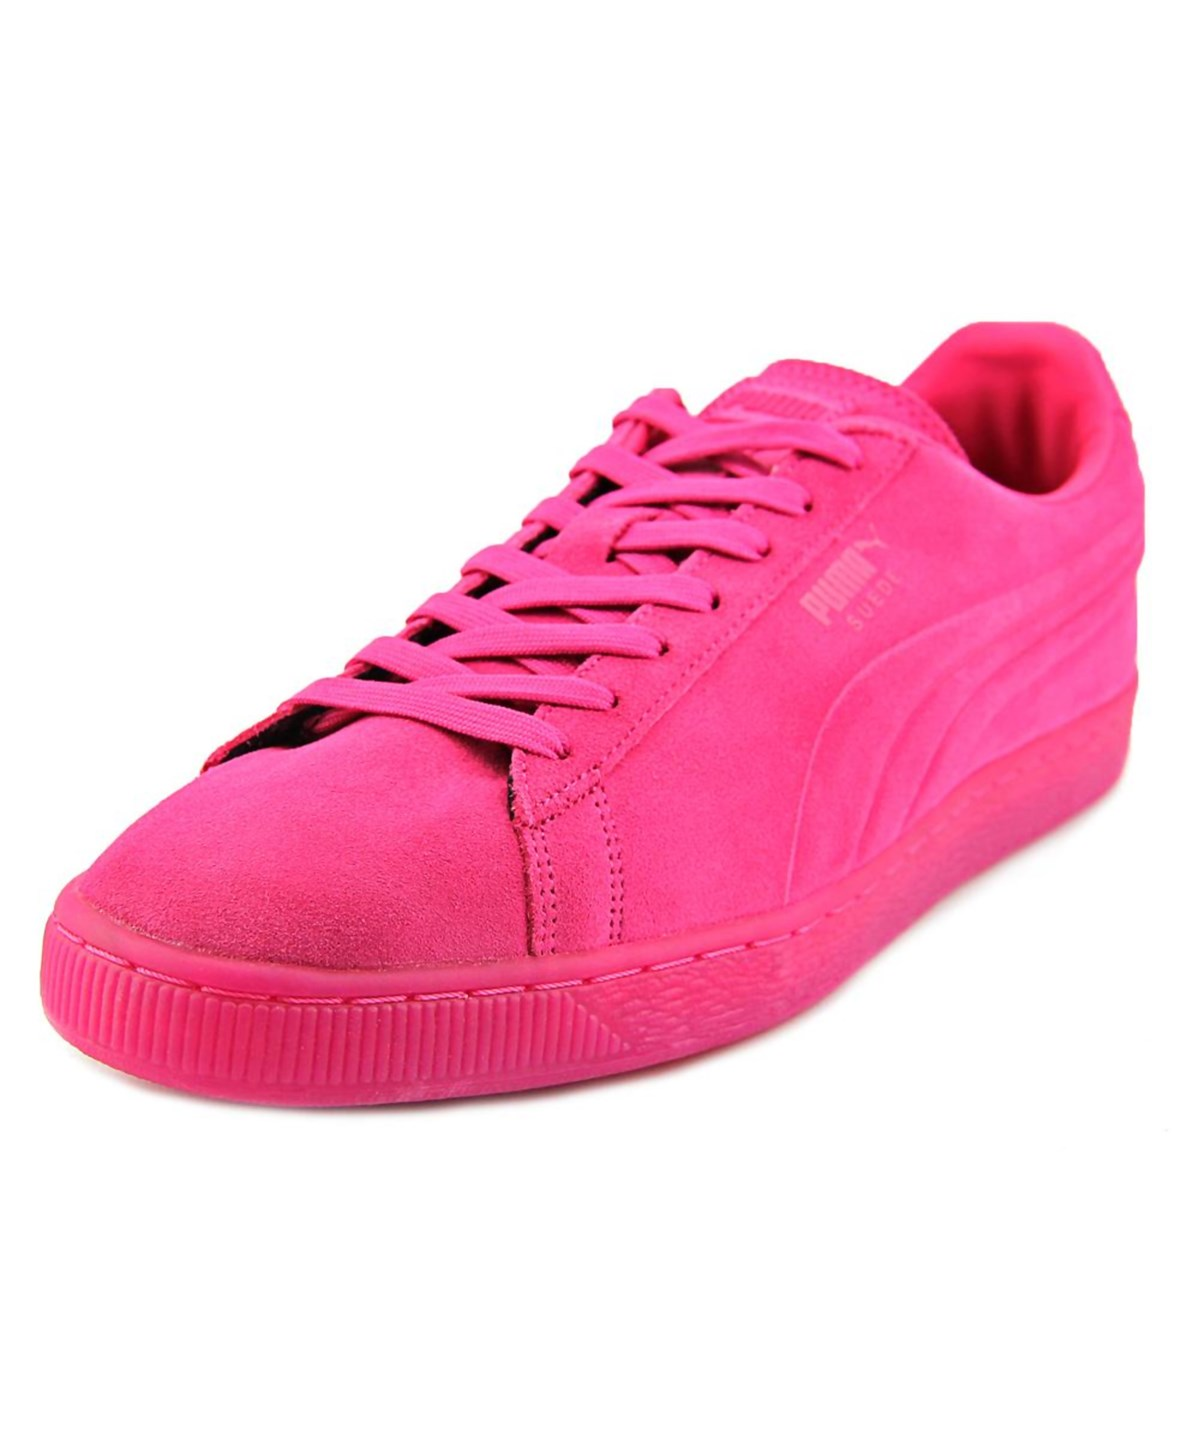 Puma Suede Iced Men  Round Toe Suede Pink Sneakers